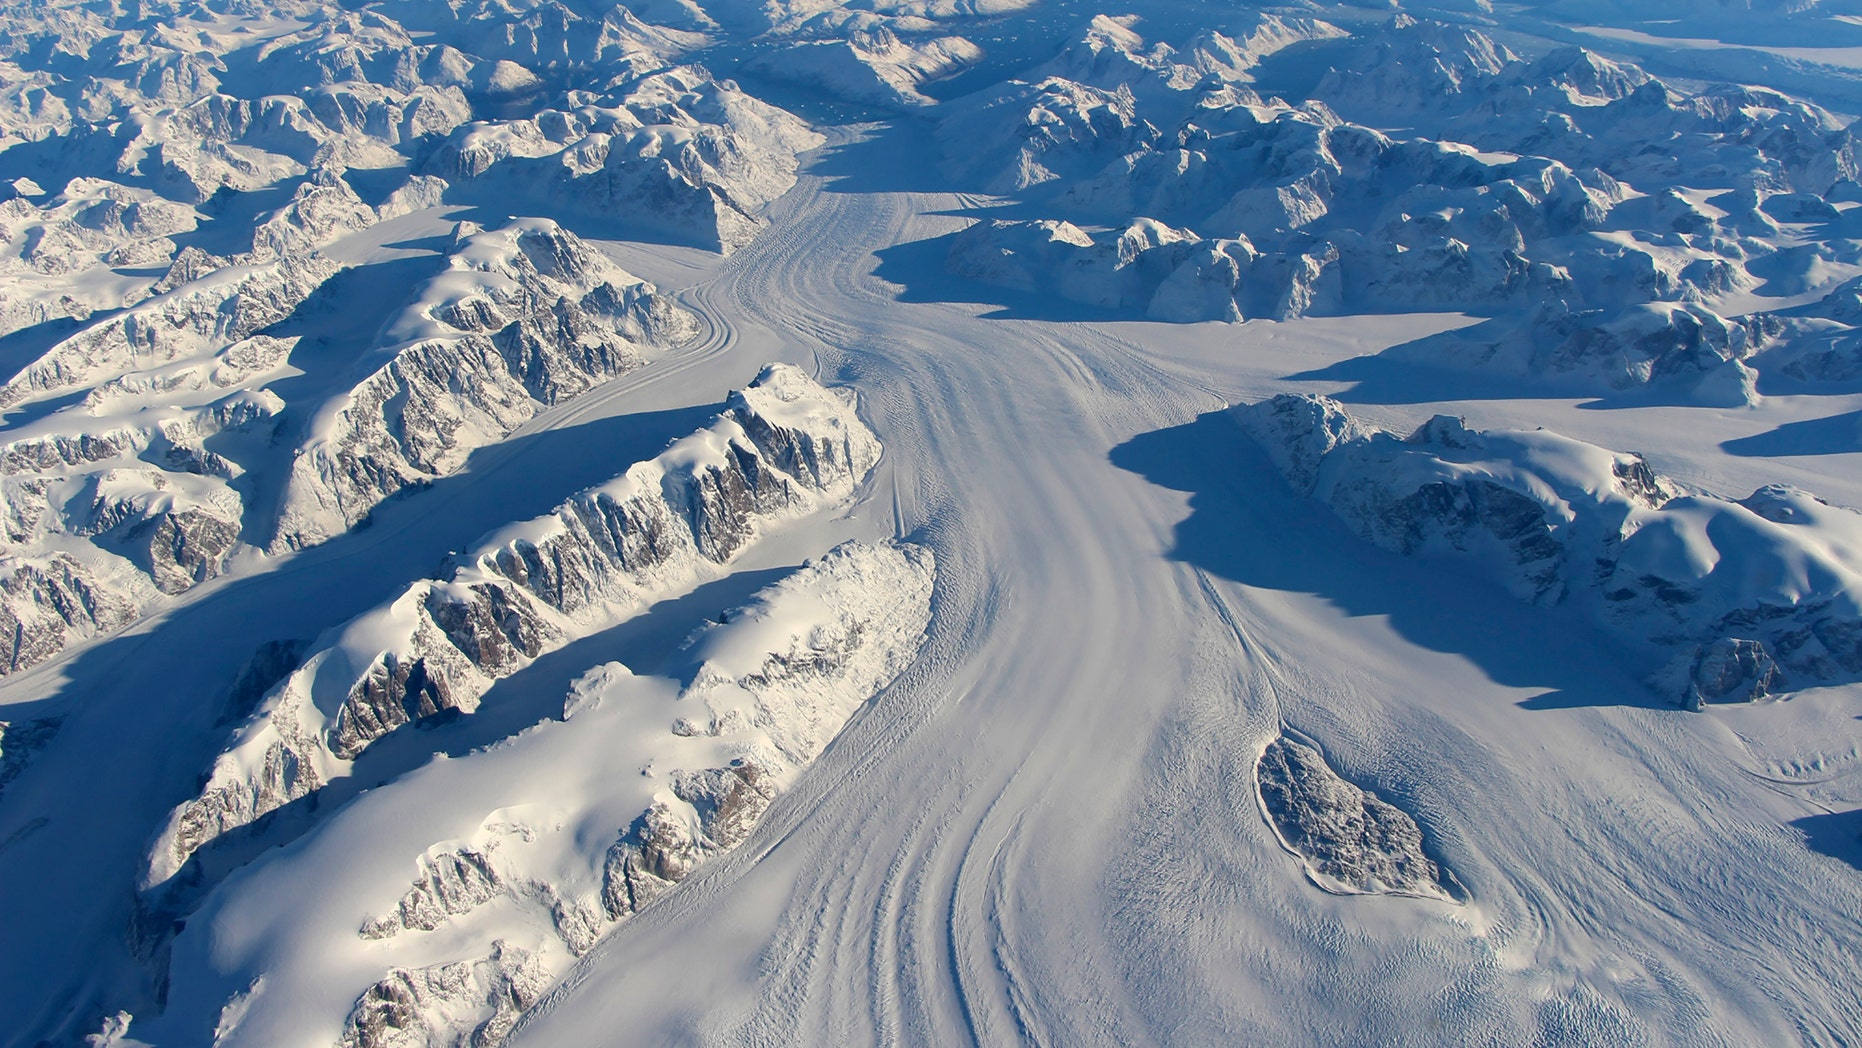 File photo - Heimdal Glacier in southern Greenland is seen in a NASA image captured by Langley Research Center's Falcon 20 aircraft Oct. 13, 2015 (REUTERS/NASA/John Sonntag/Handout via Reuters)